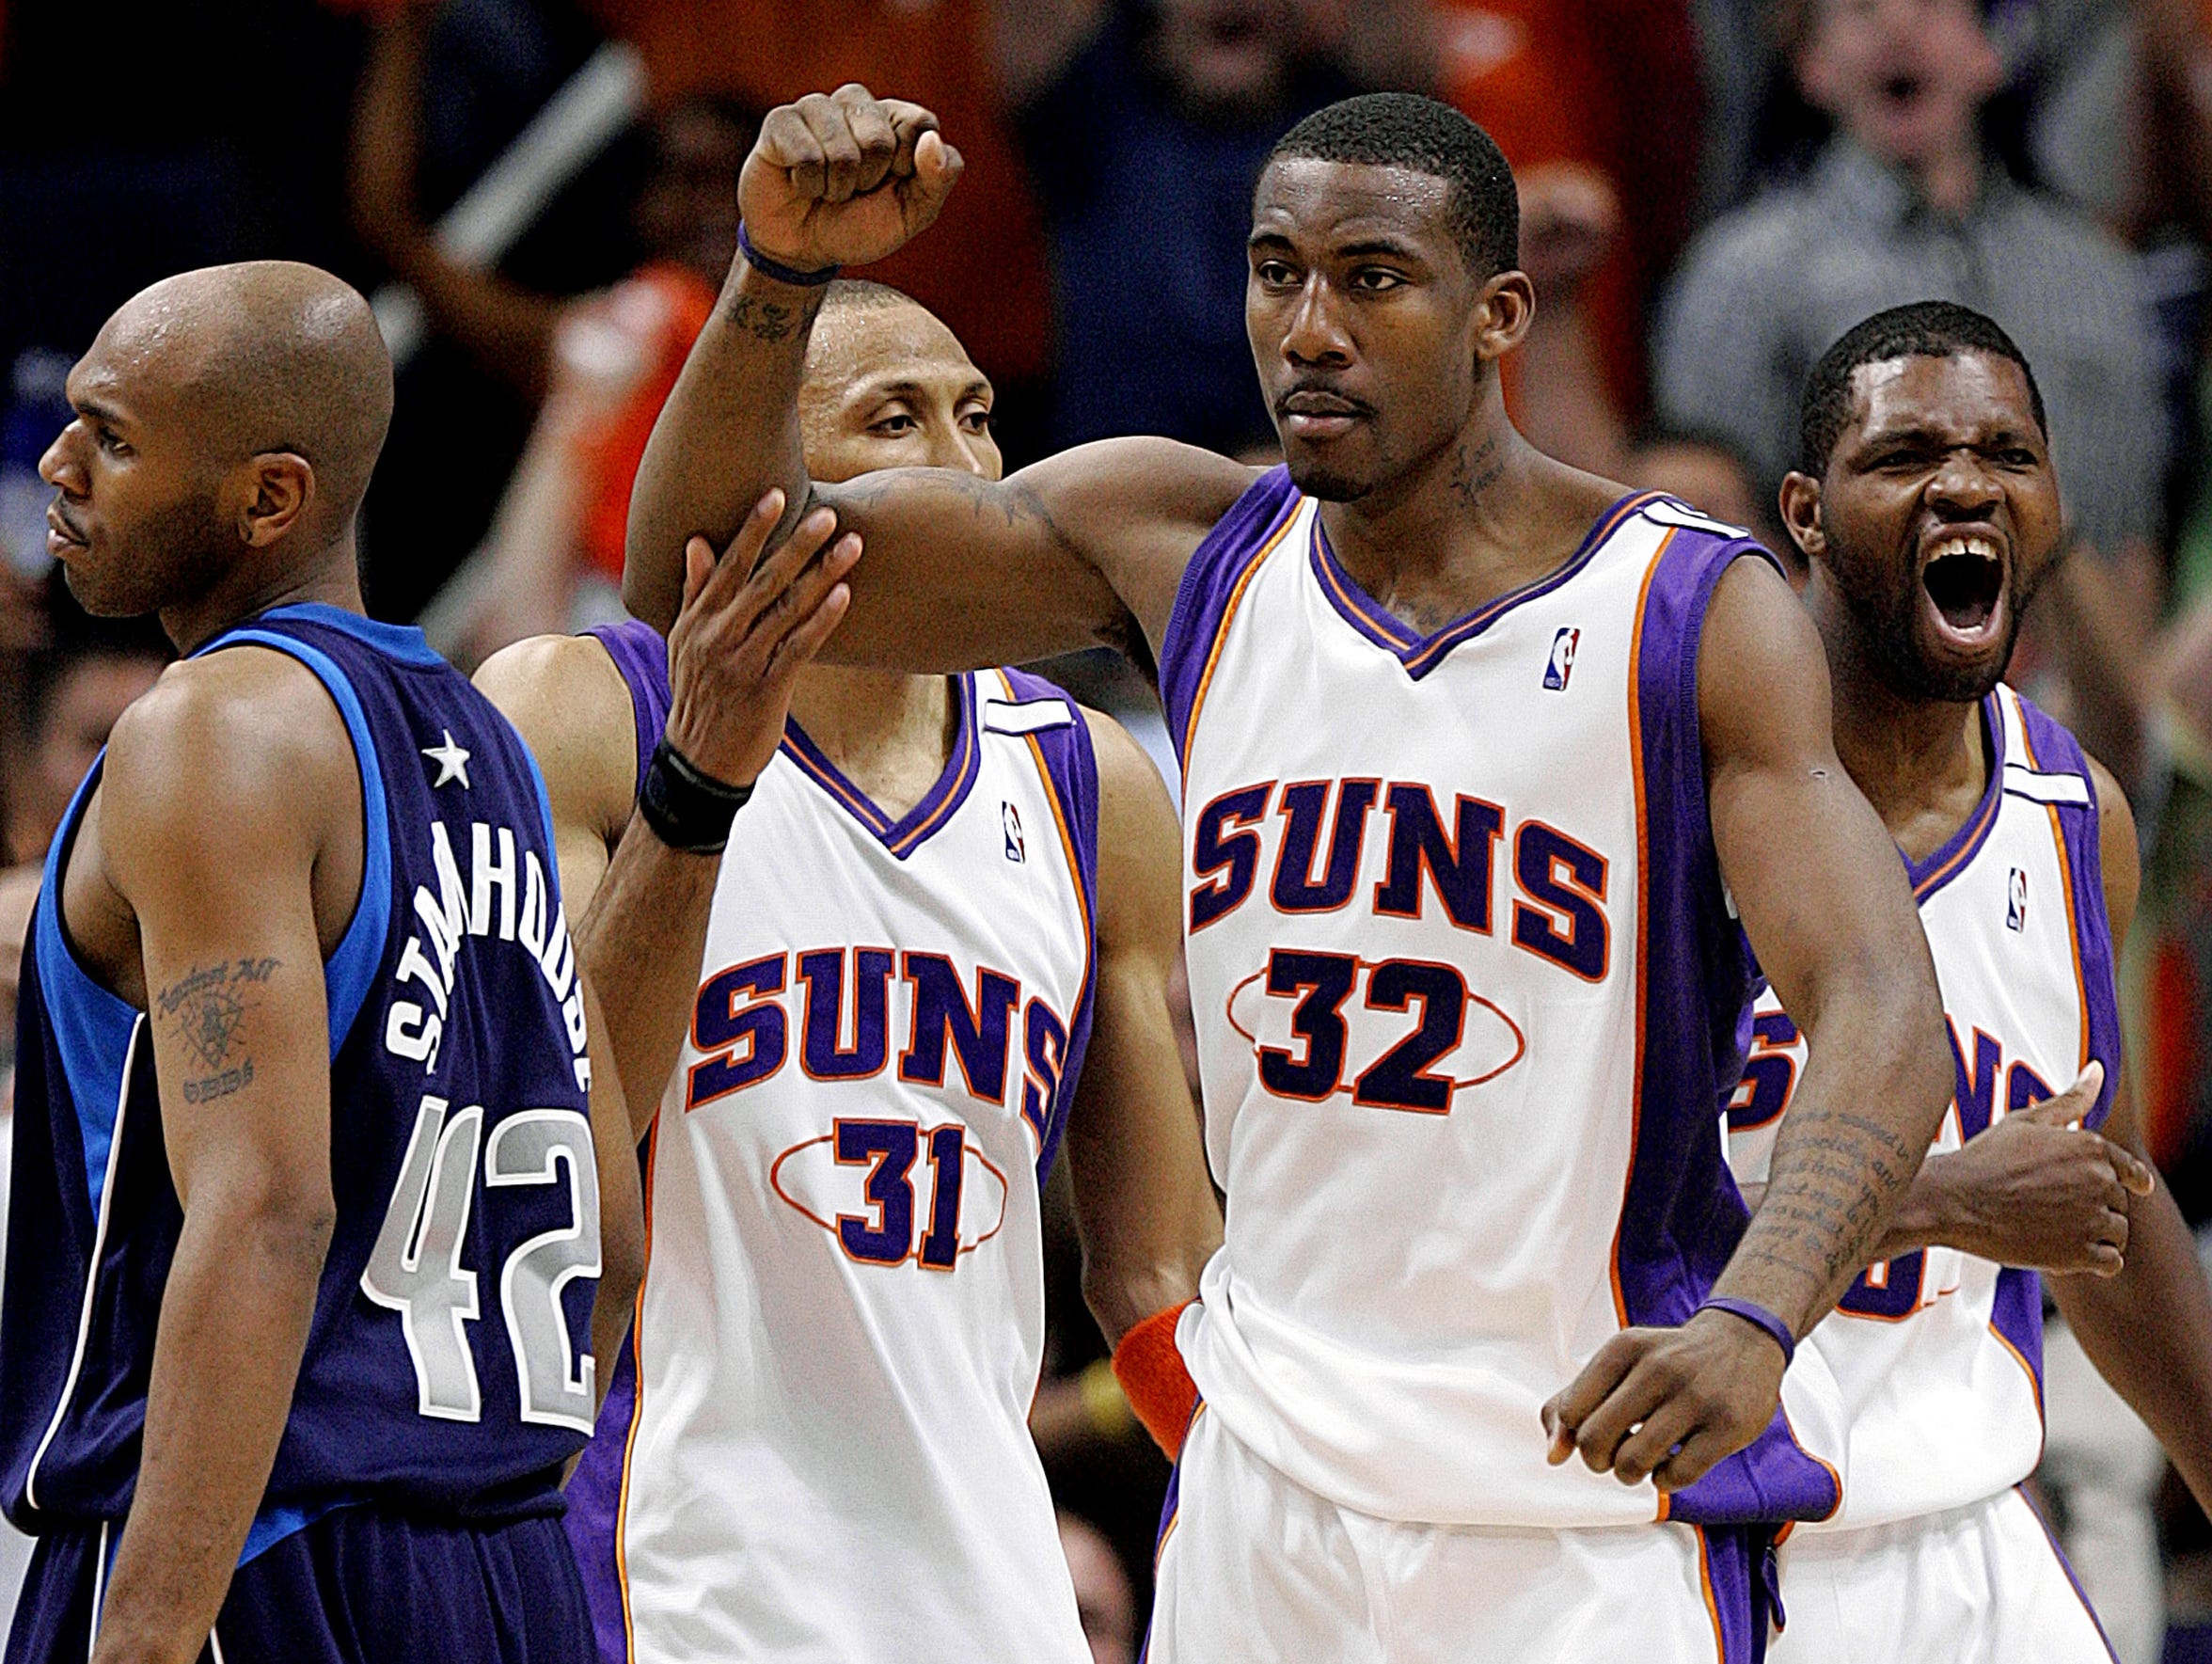 Phoenix Suns' Amare Stoudemire (32) pumps his fist